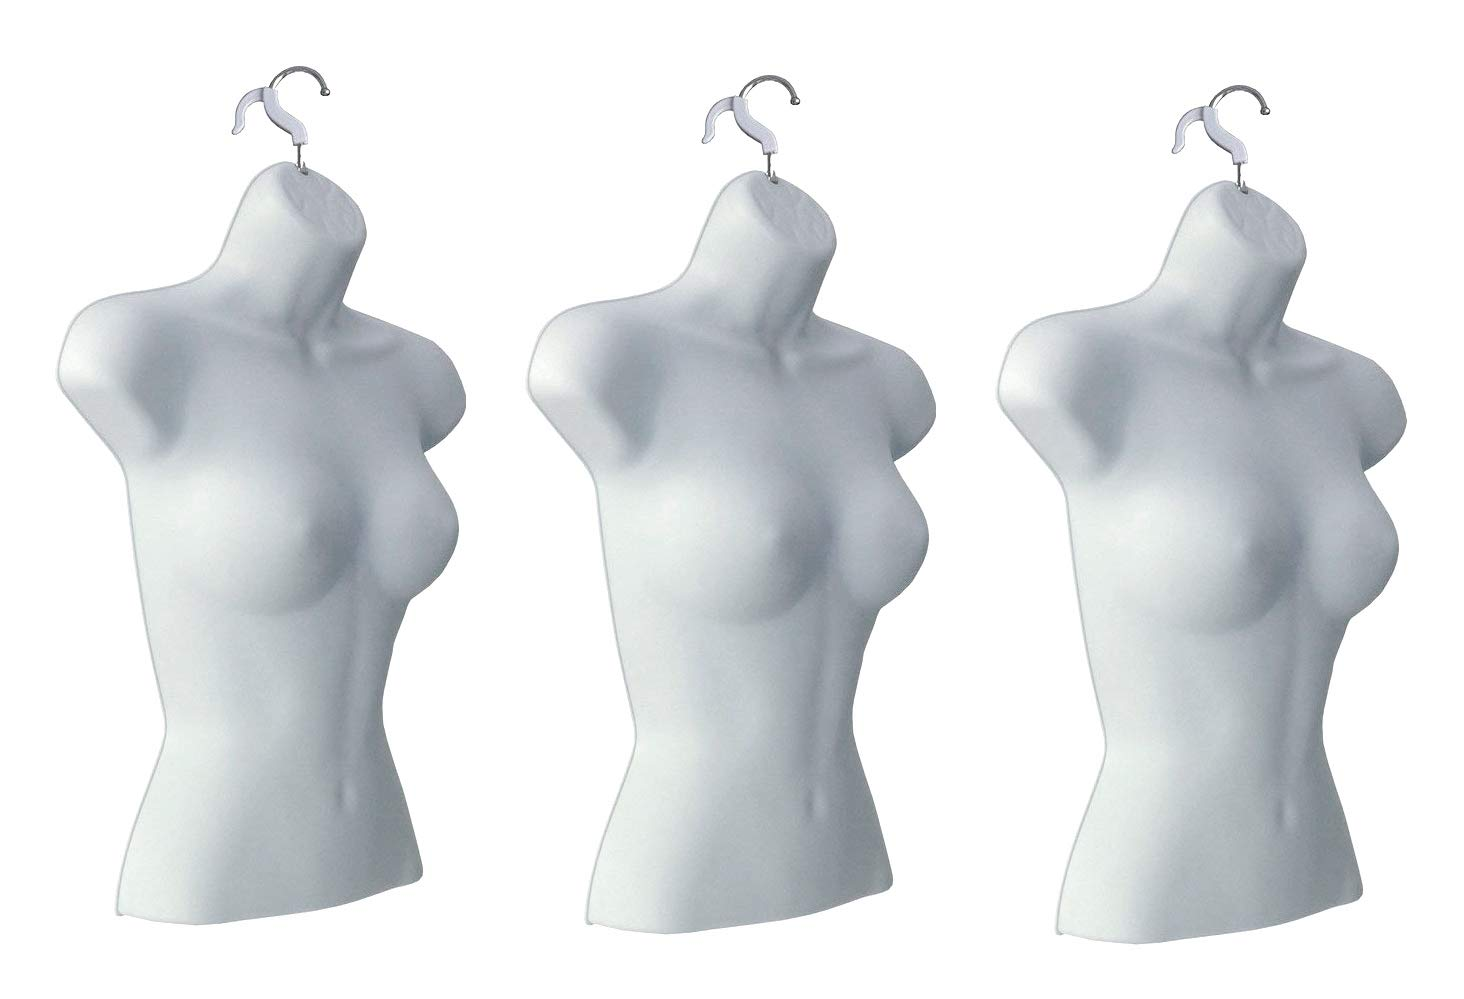 Only Hangers Set of (3) Female Torso Body Mannequin Forms (Waist Long) Great for Small and Medium Sizes, White Finish by Only Hangers